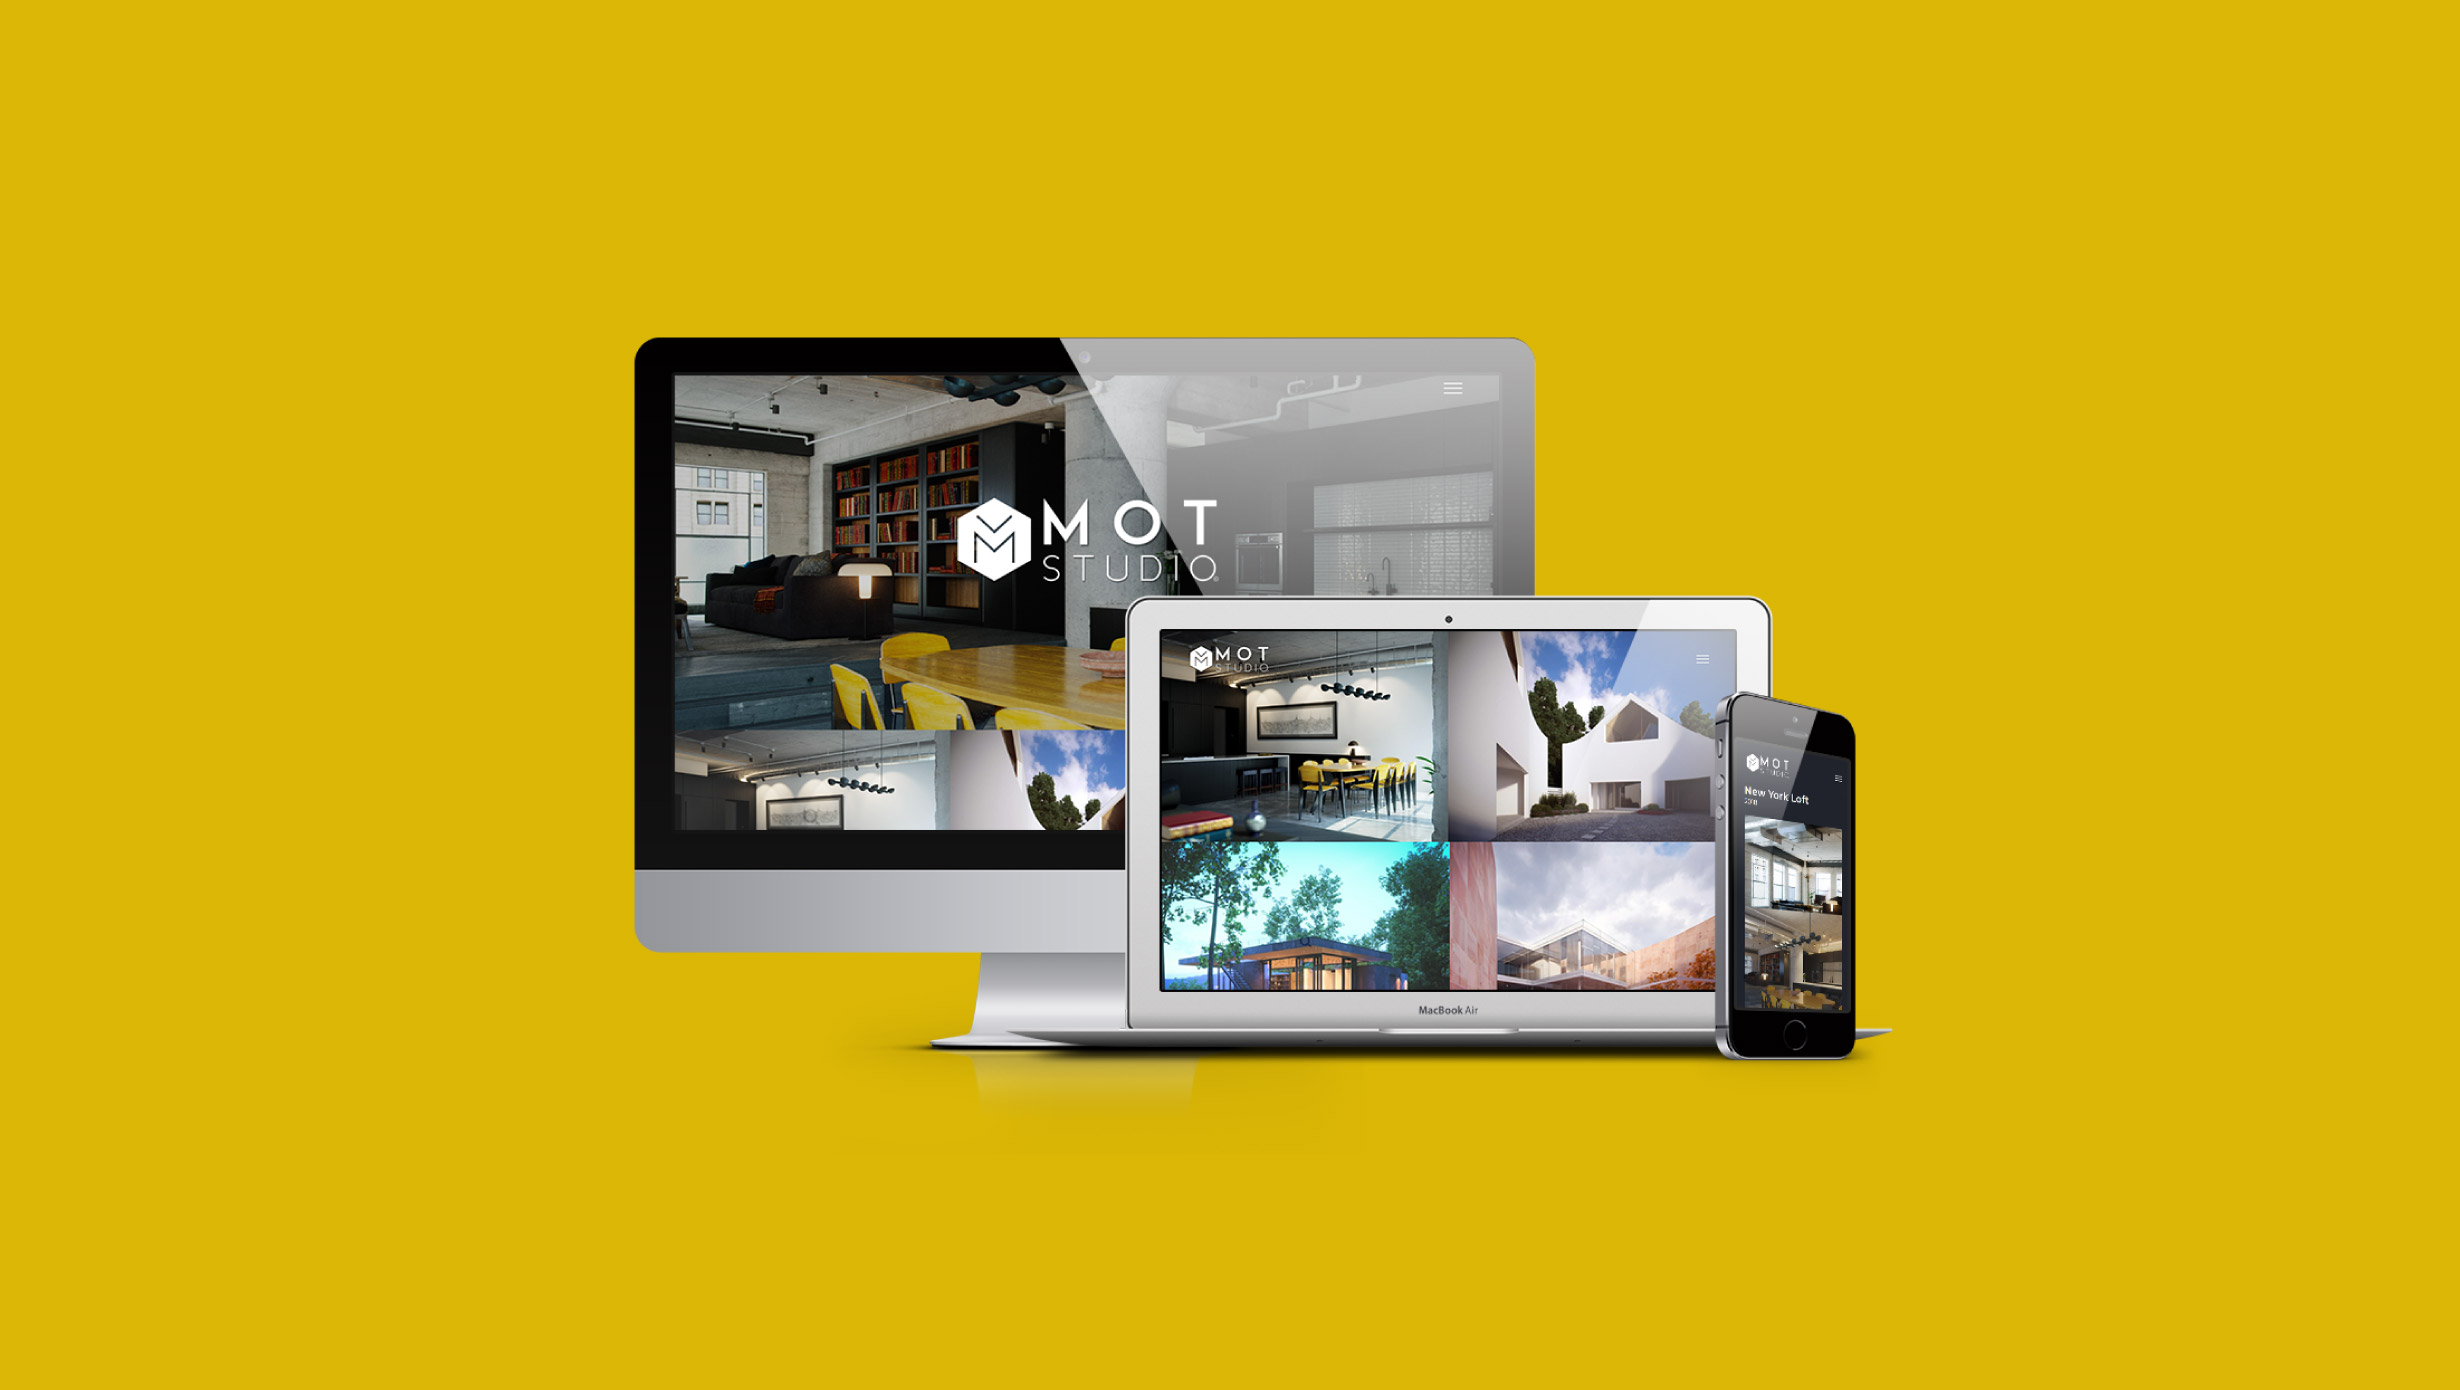 MOT Studio Website Design - https://motstudio.co/